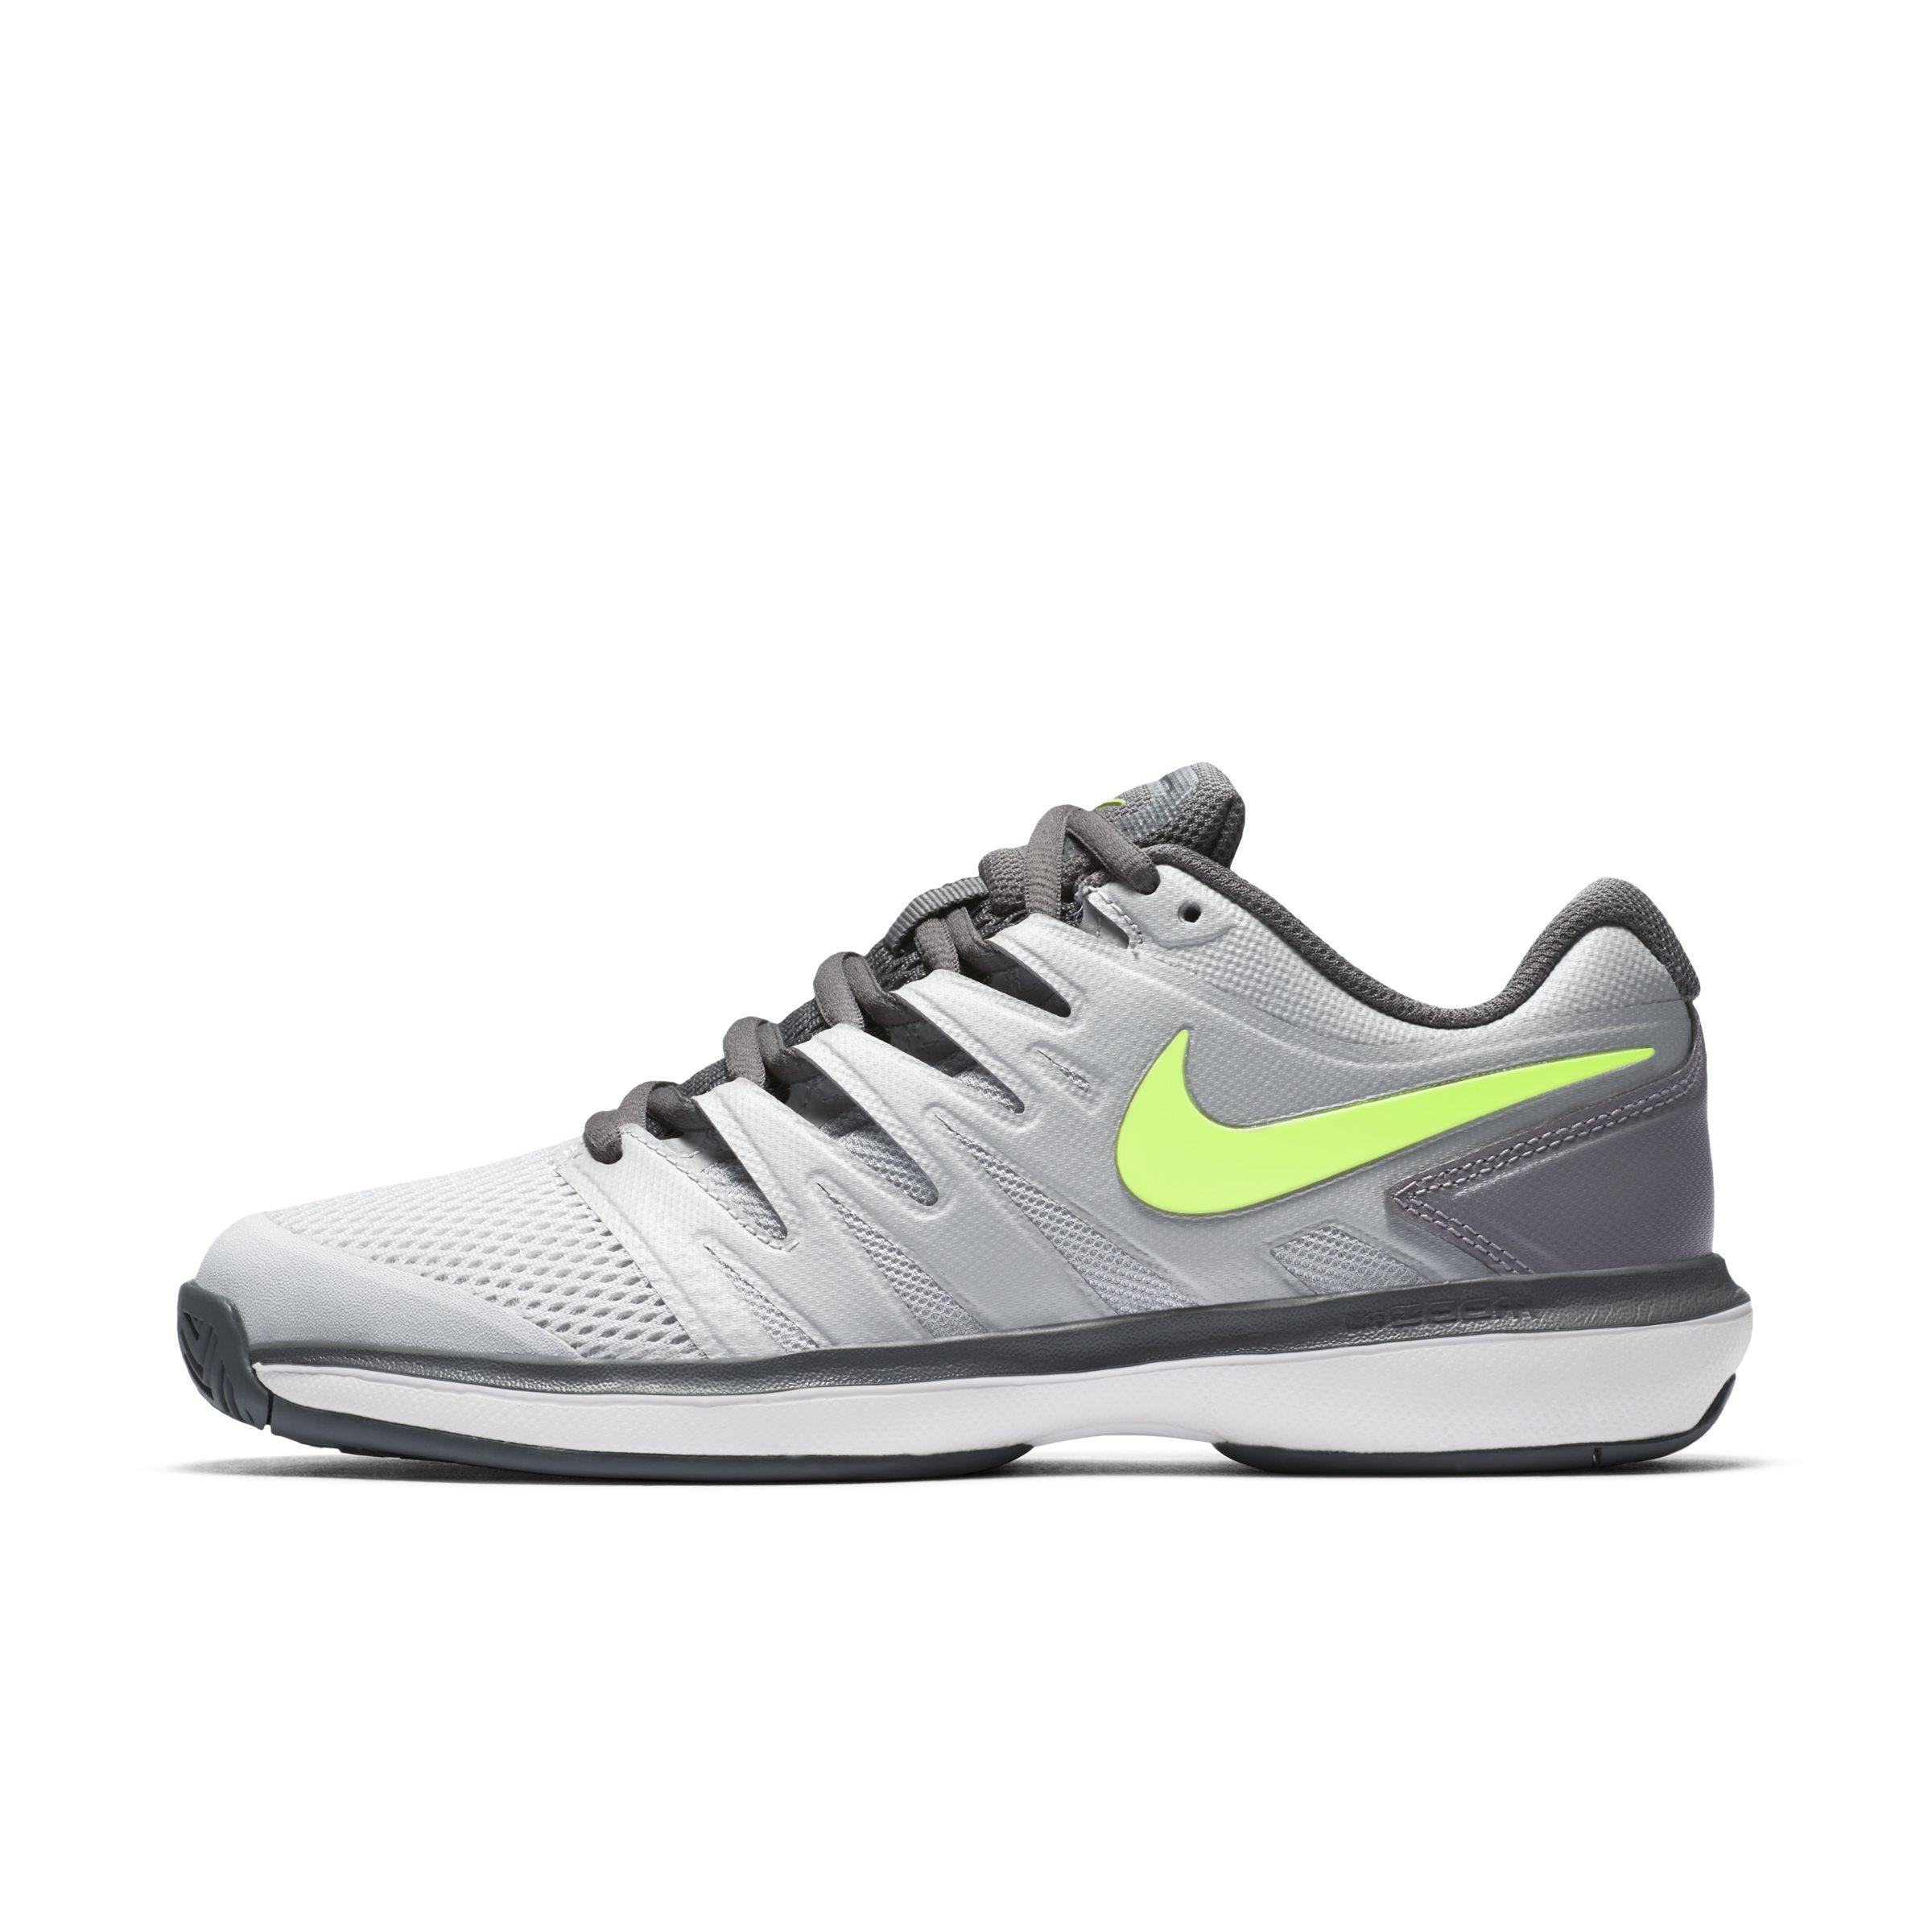 e96c4c77954 Nike Court Air Zoom Prestige Hard Court Tennis Shoe in Gray for Men ...